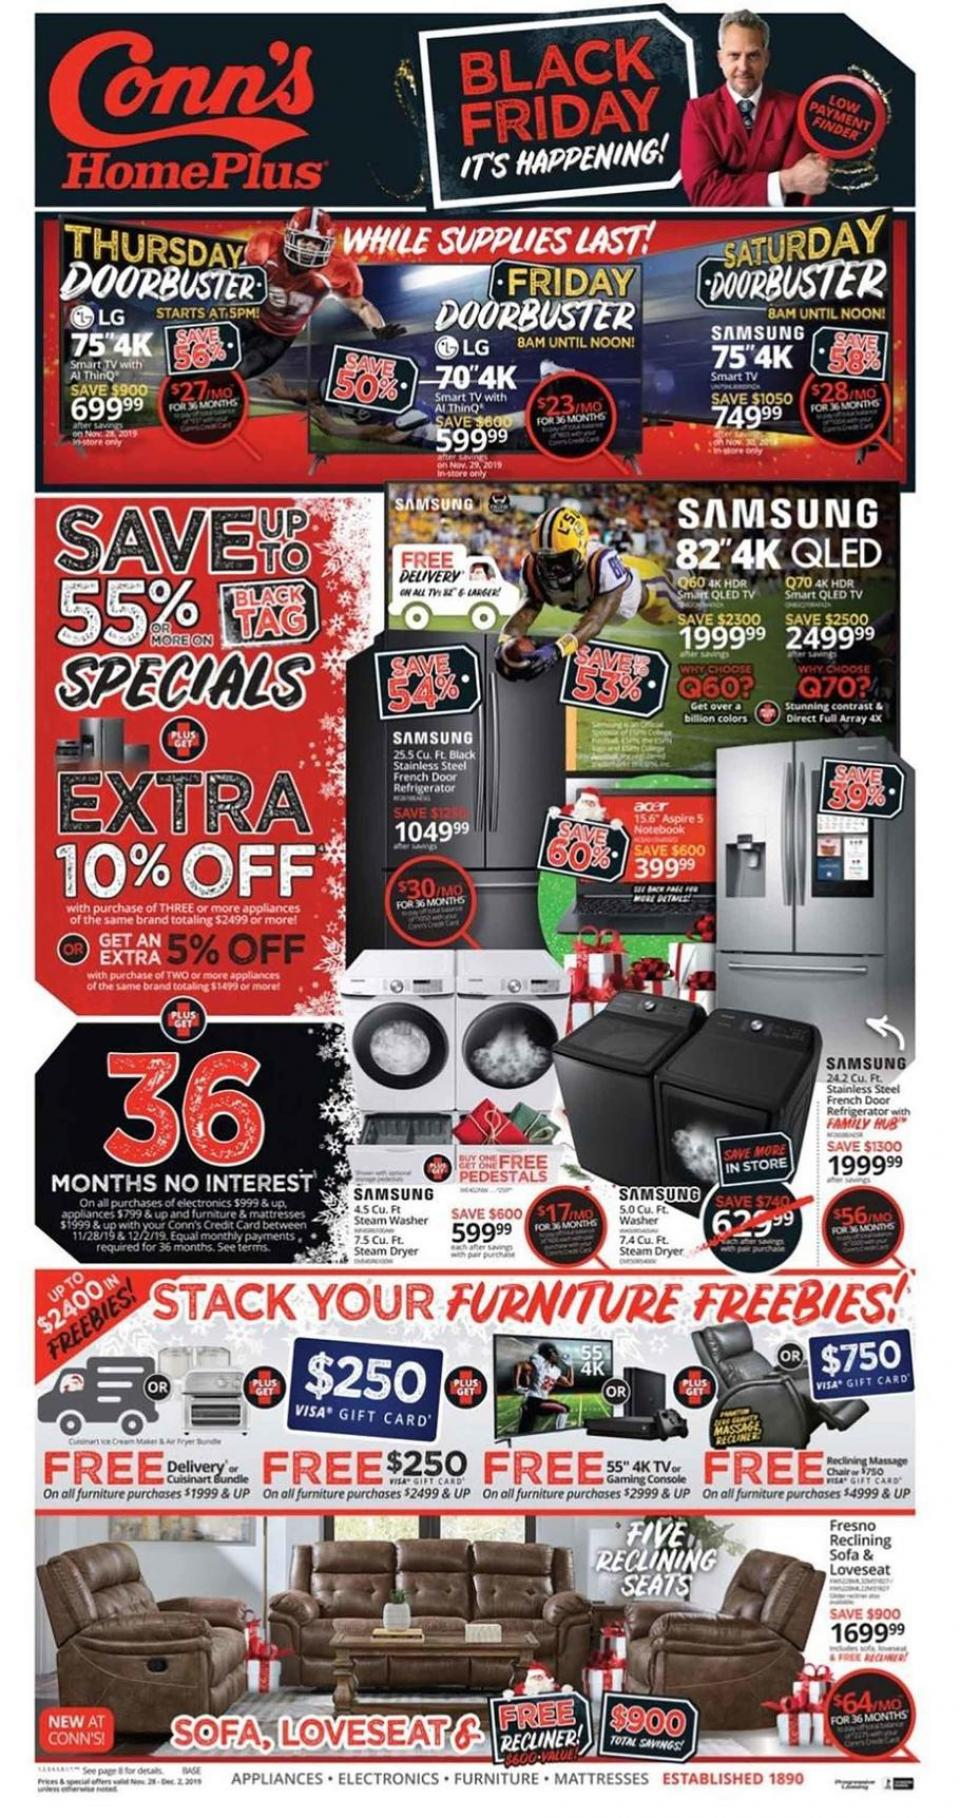 Conn's Homeplus black friday ad